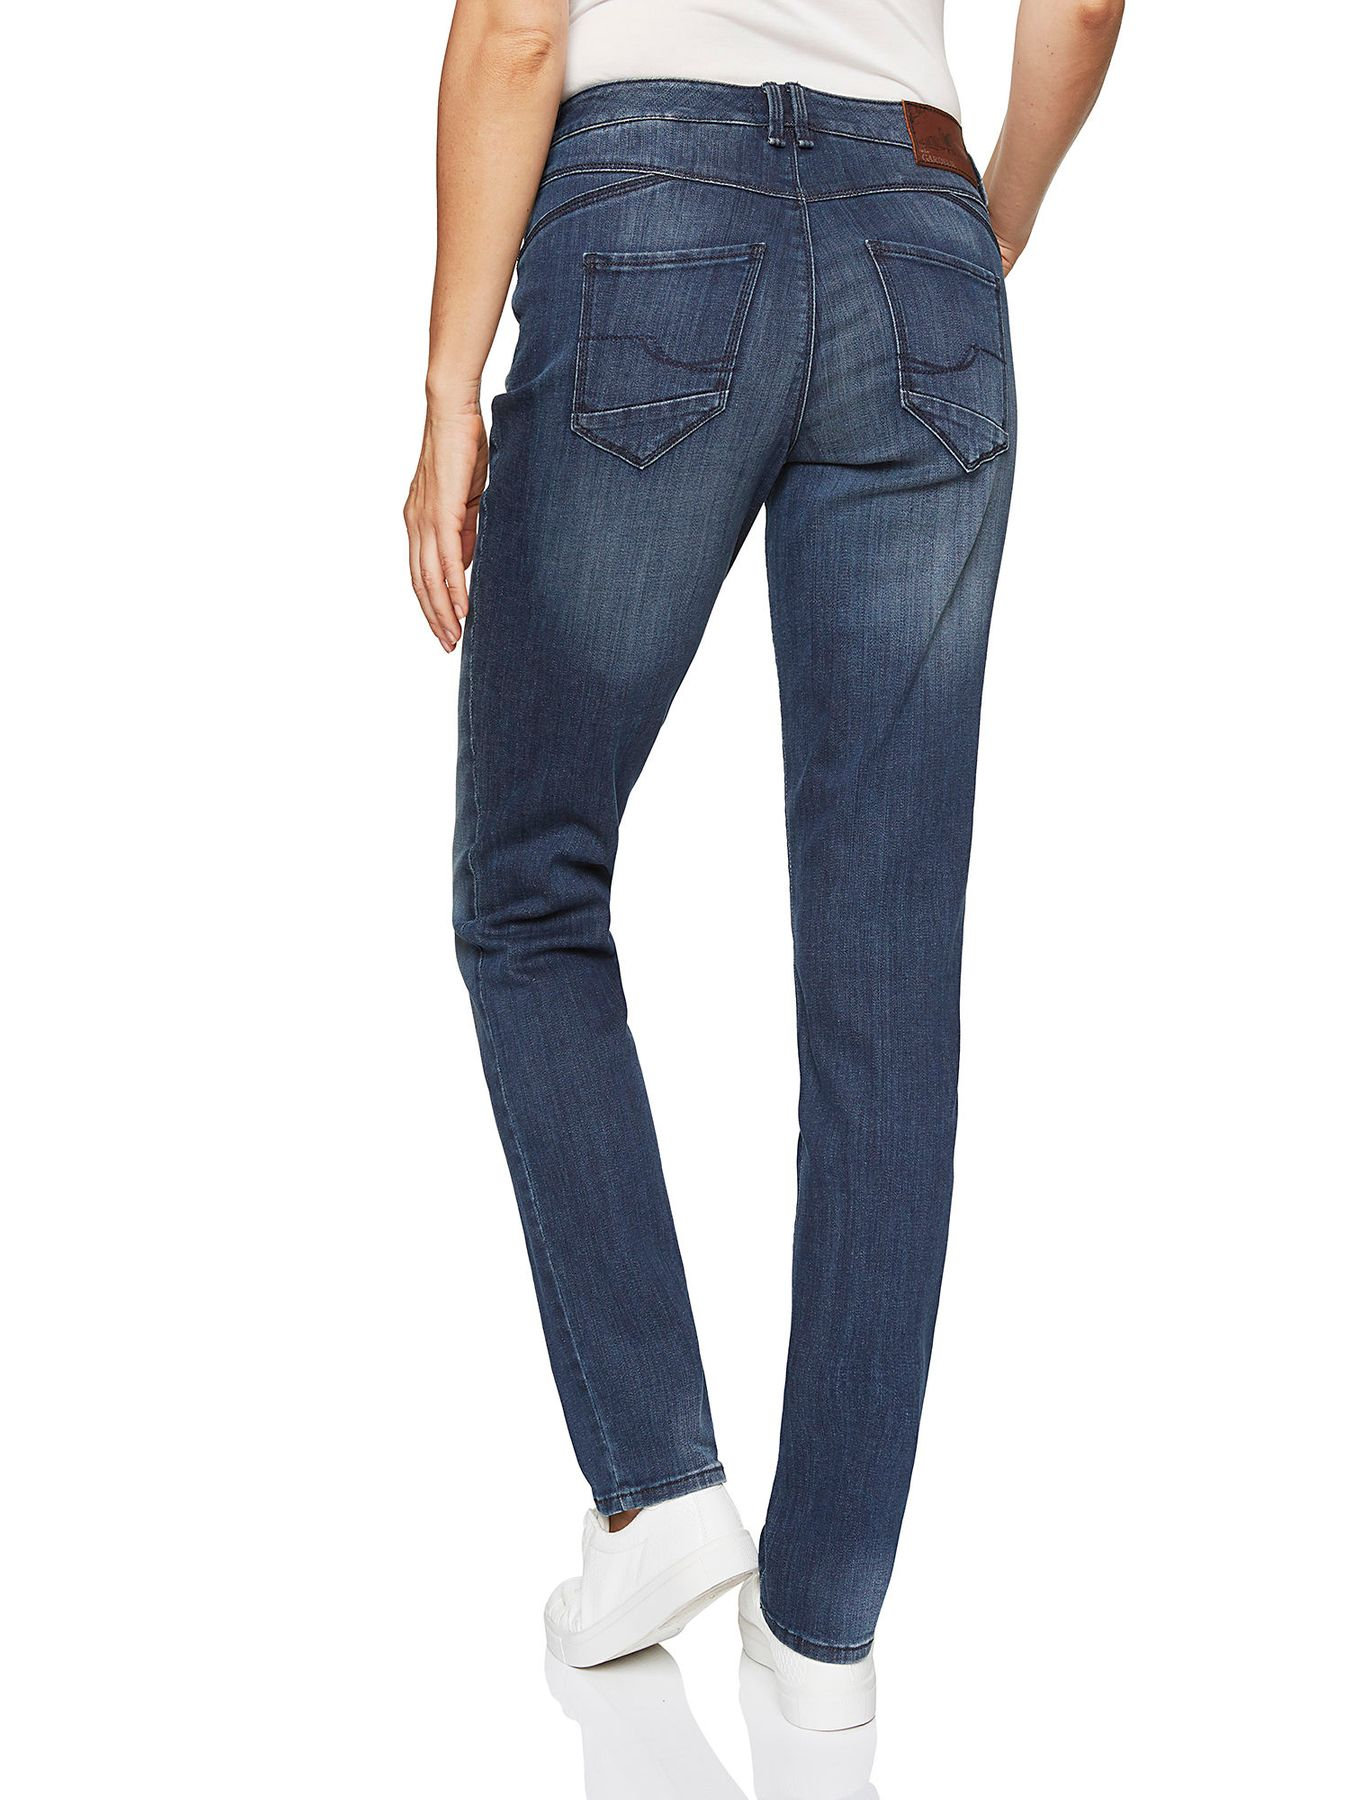 Atelier Gardeur - Slim Fit - Damen 5-Pocket Jeans aus Baumwollstretch Ciara (670131) – Bild 3